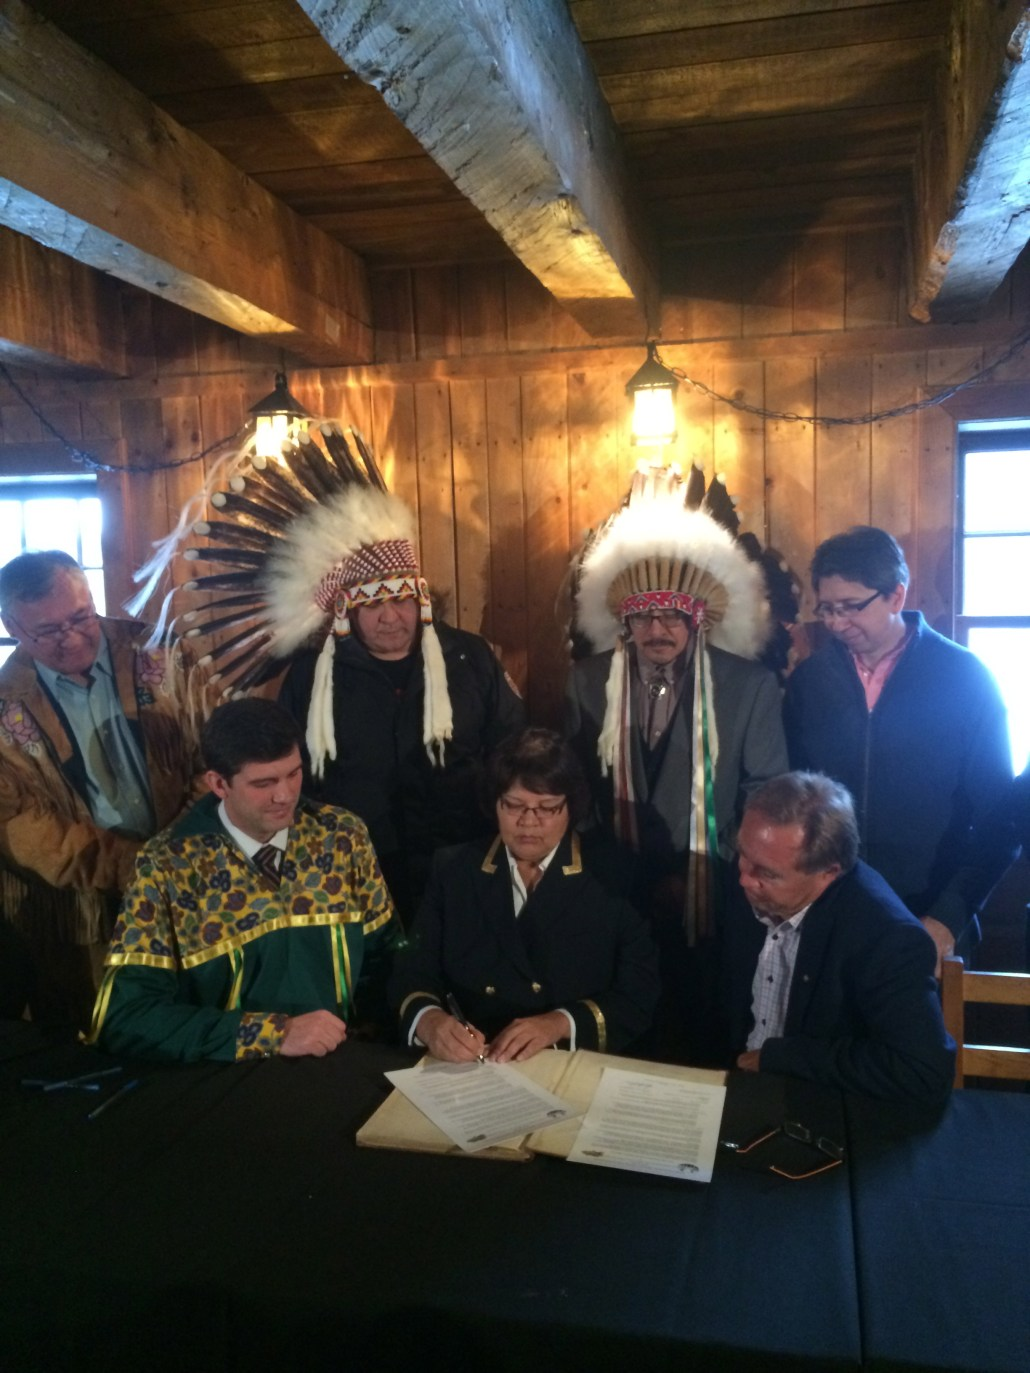 Signing the memorandum of understanding with Treaty 6 and Fort Edmonton Park representatives. Image courtesy of the Mayor's Office.